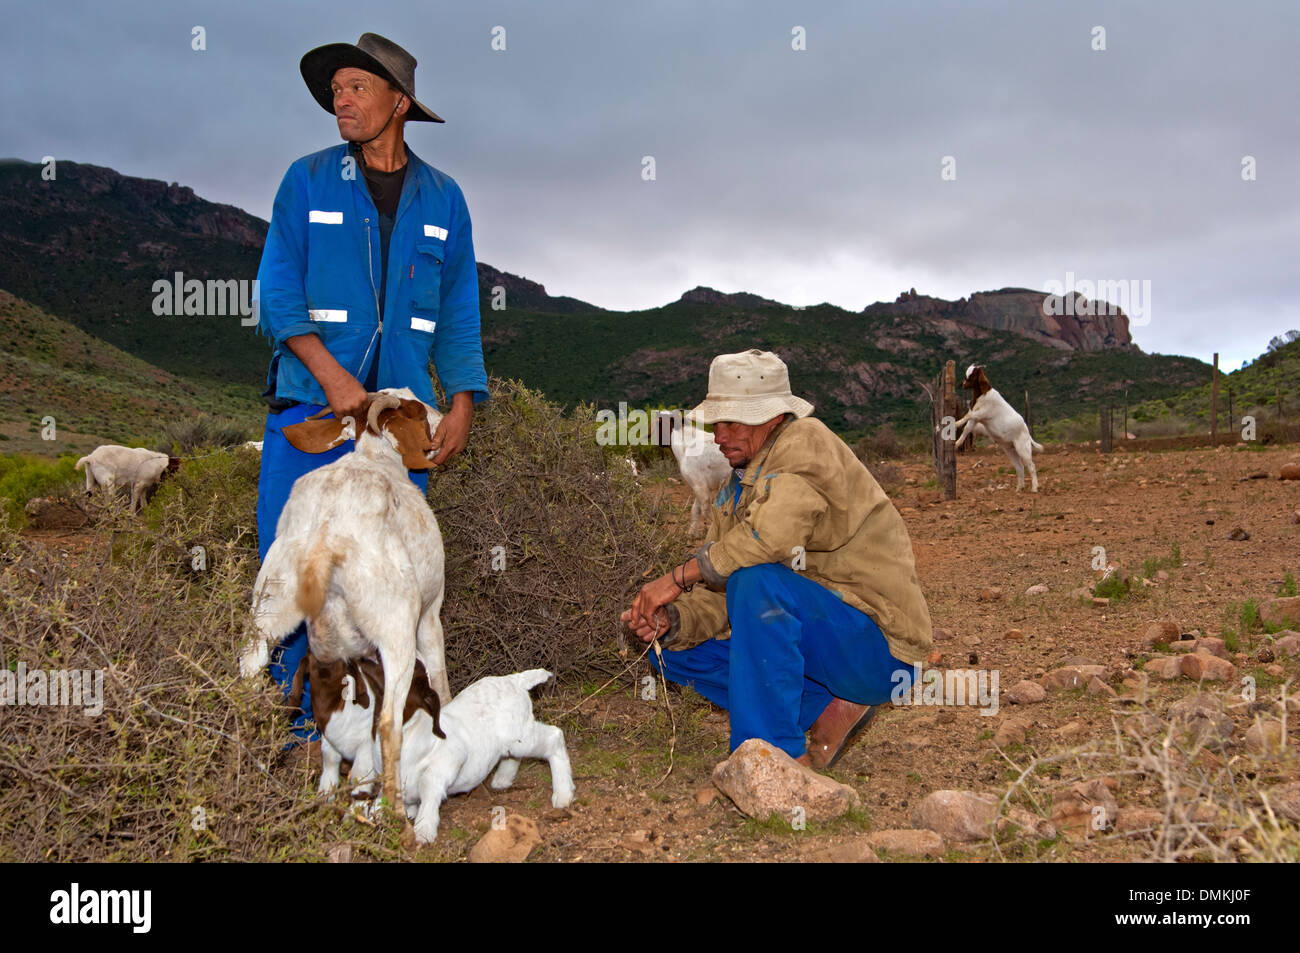 Two Nama goat herders letting Boer goatlings suckle with the female, near Kuboes, Richtersveld, South Africa - Stock Image